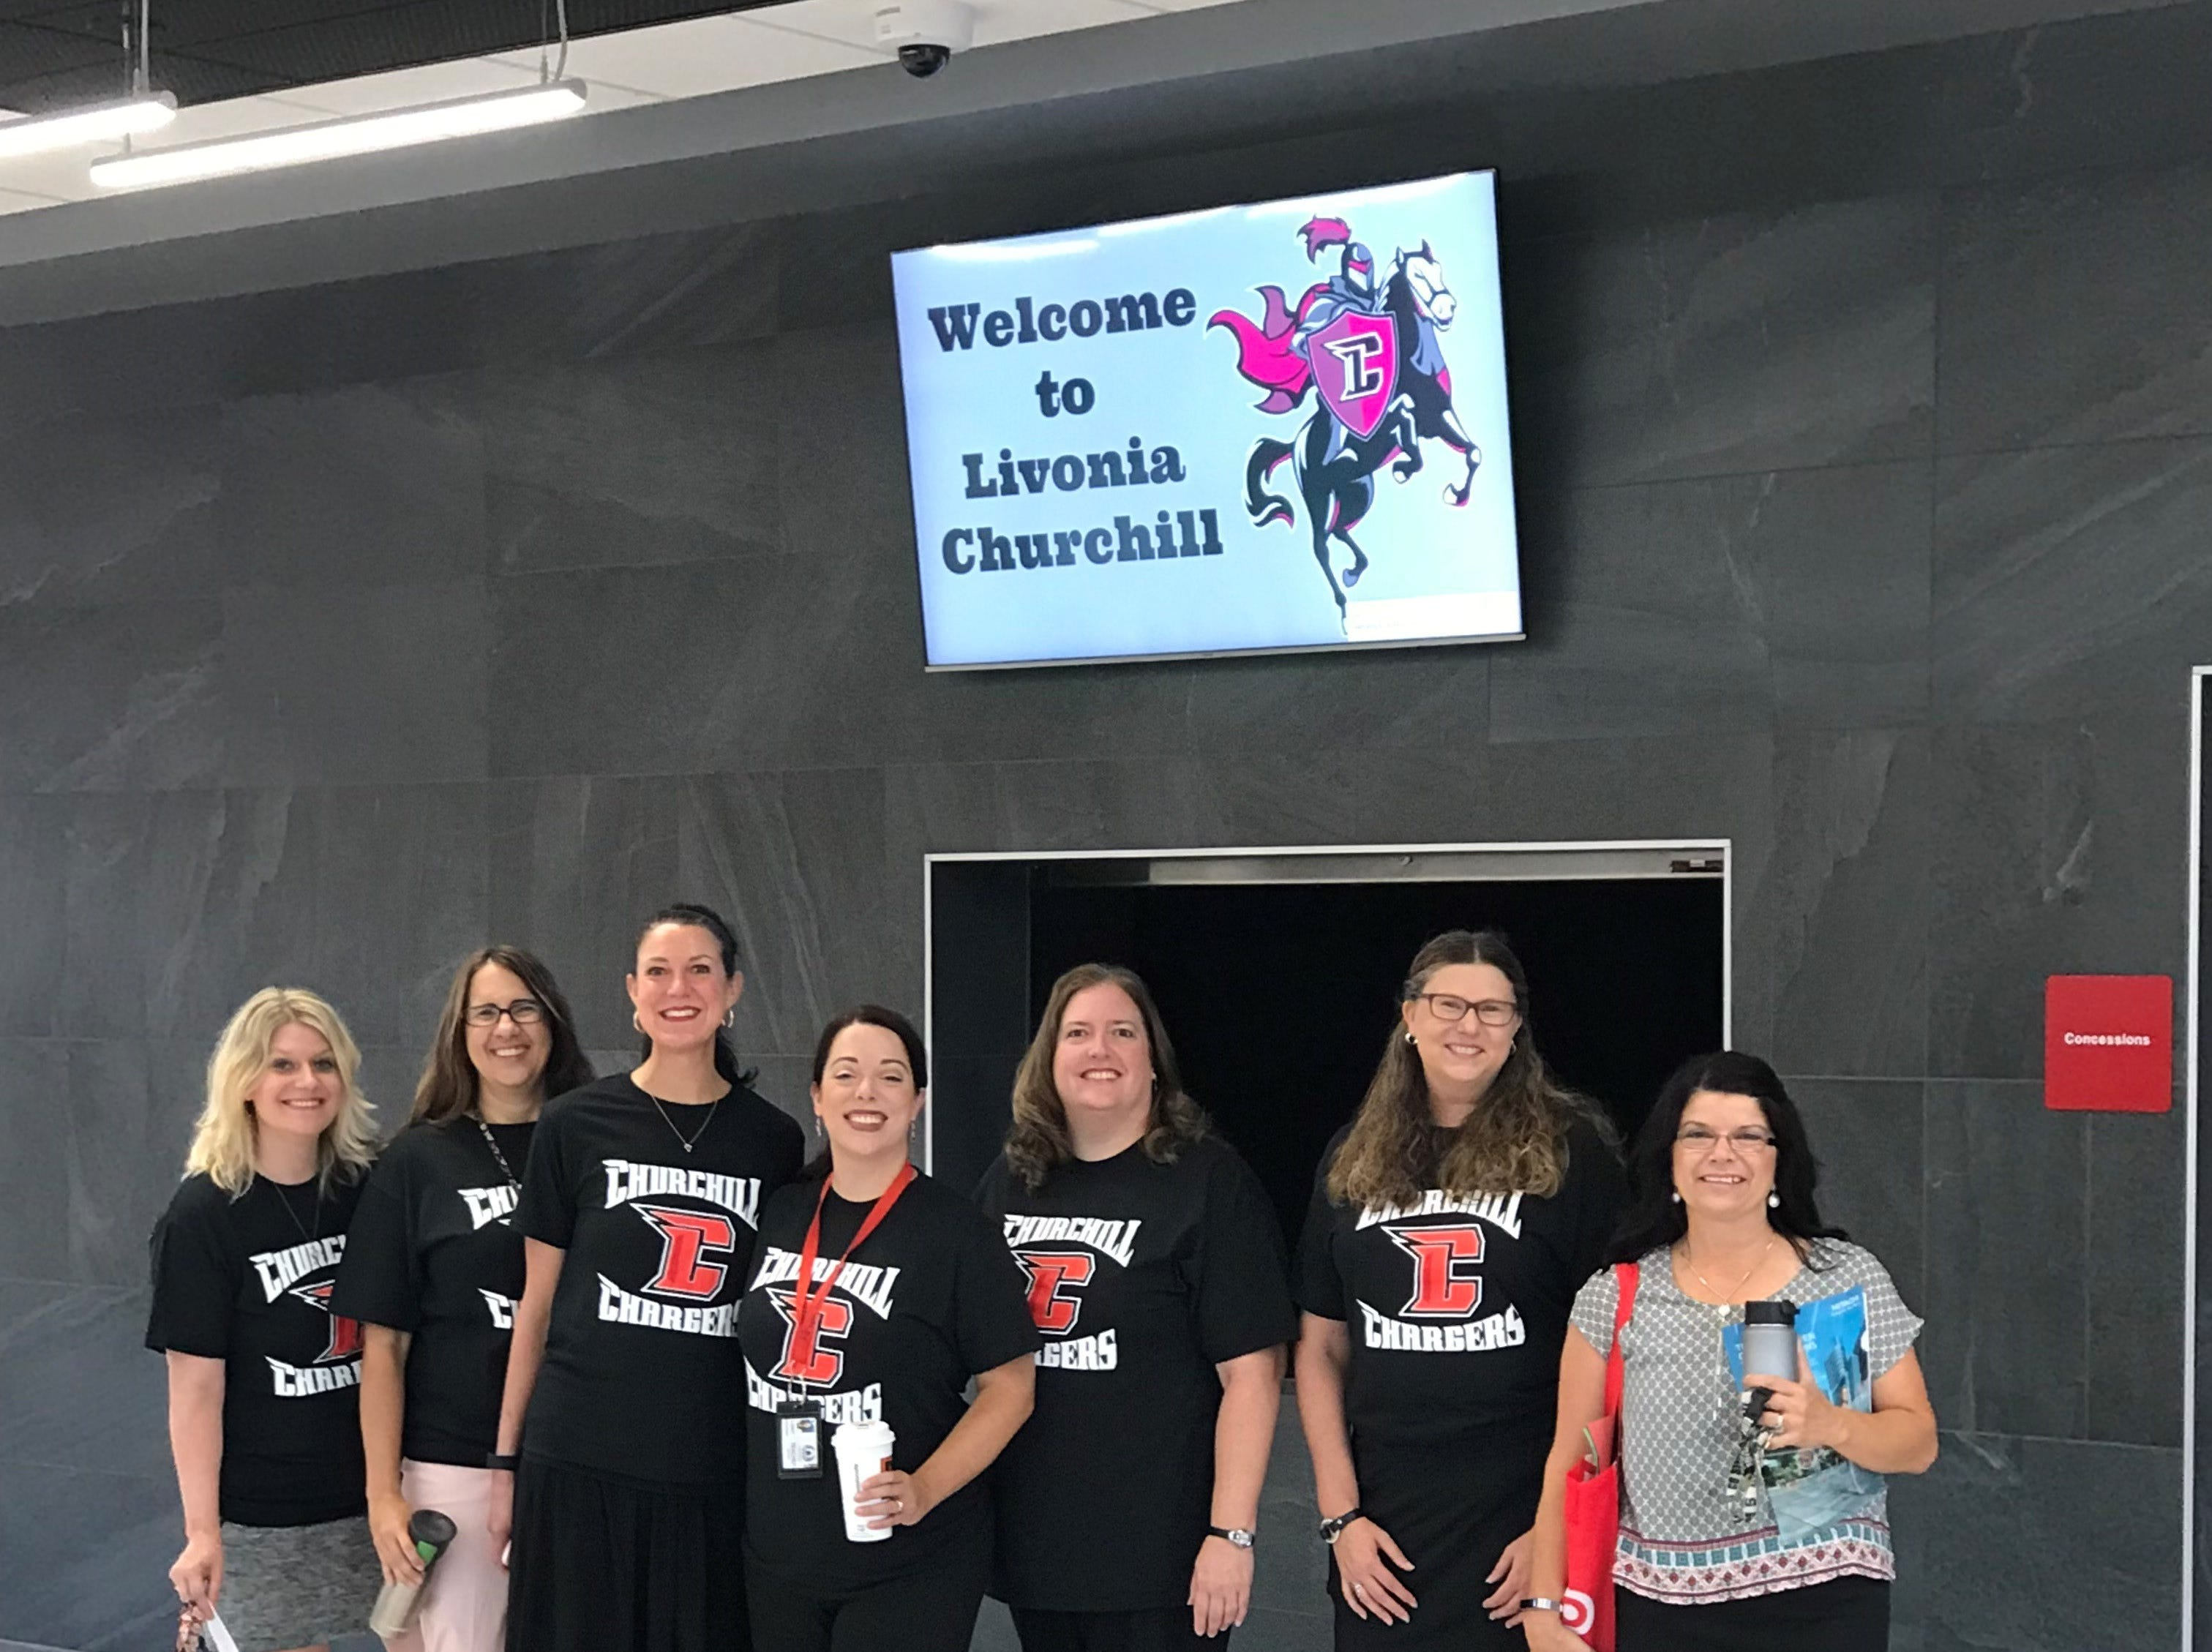 Welcoming faces greeted students returning to Churchill High School Tuesday.